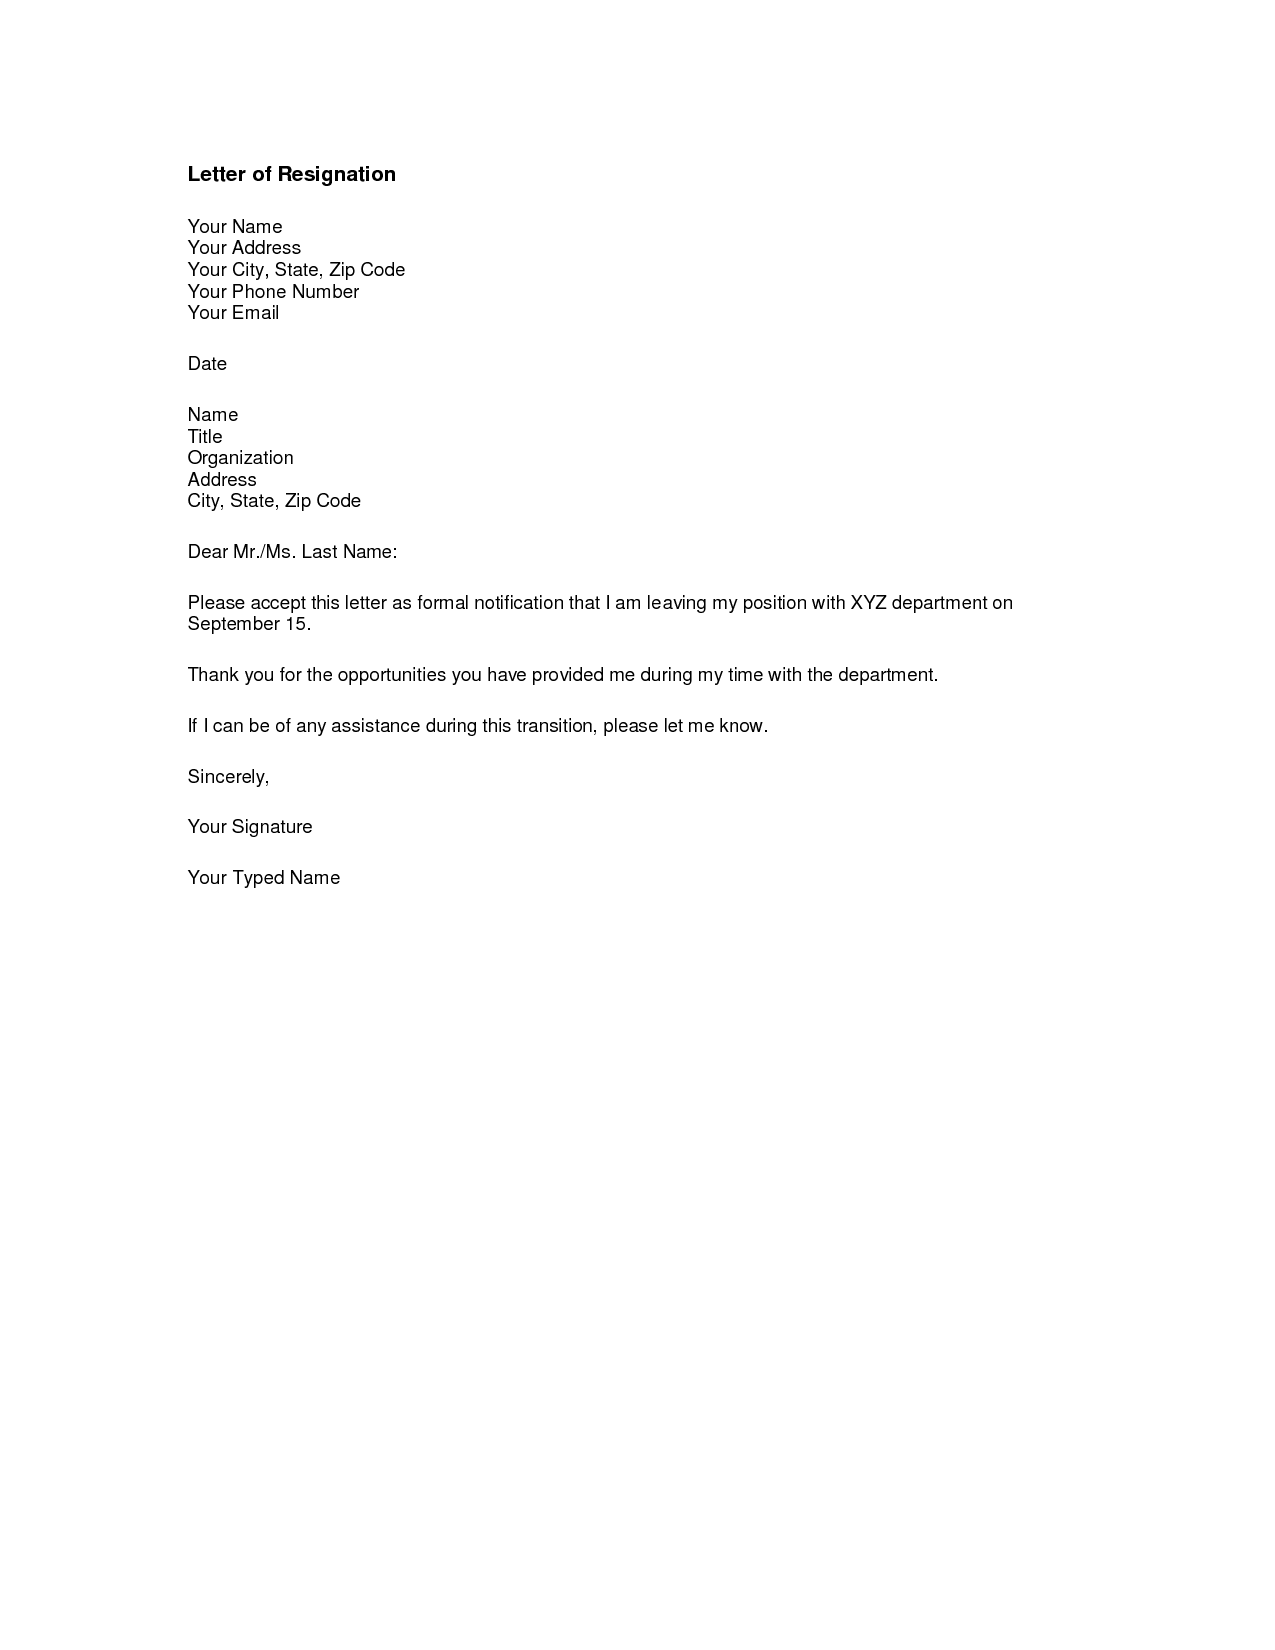 Resing Letter Resignation Letter Short Resign Letter For Company How